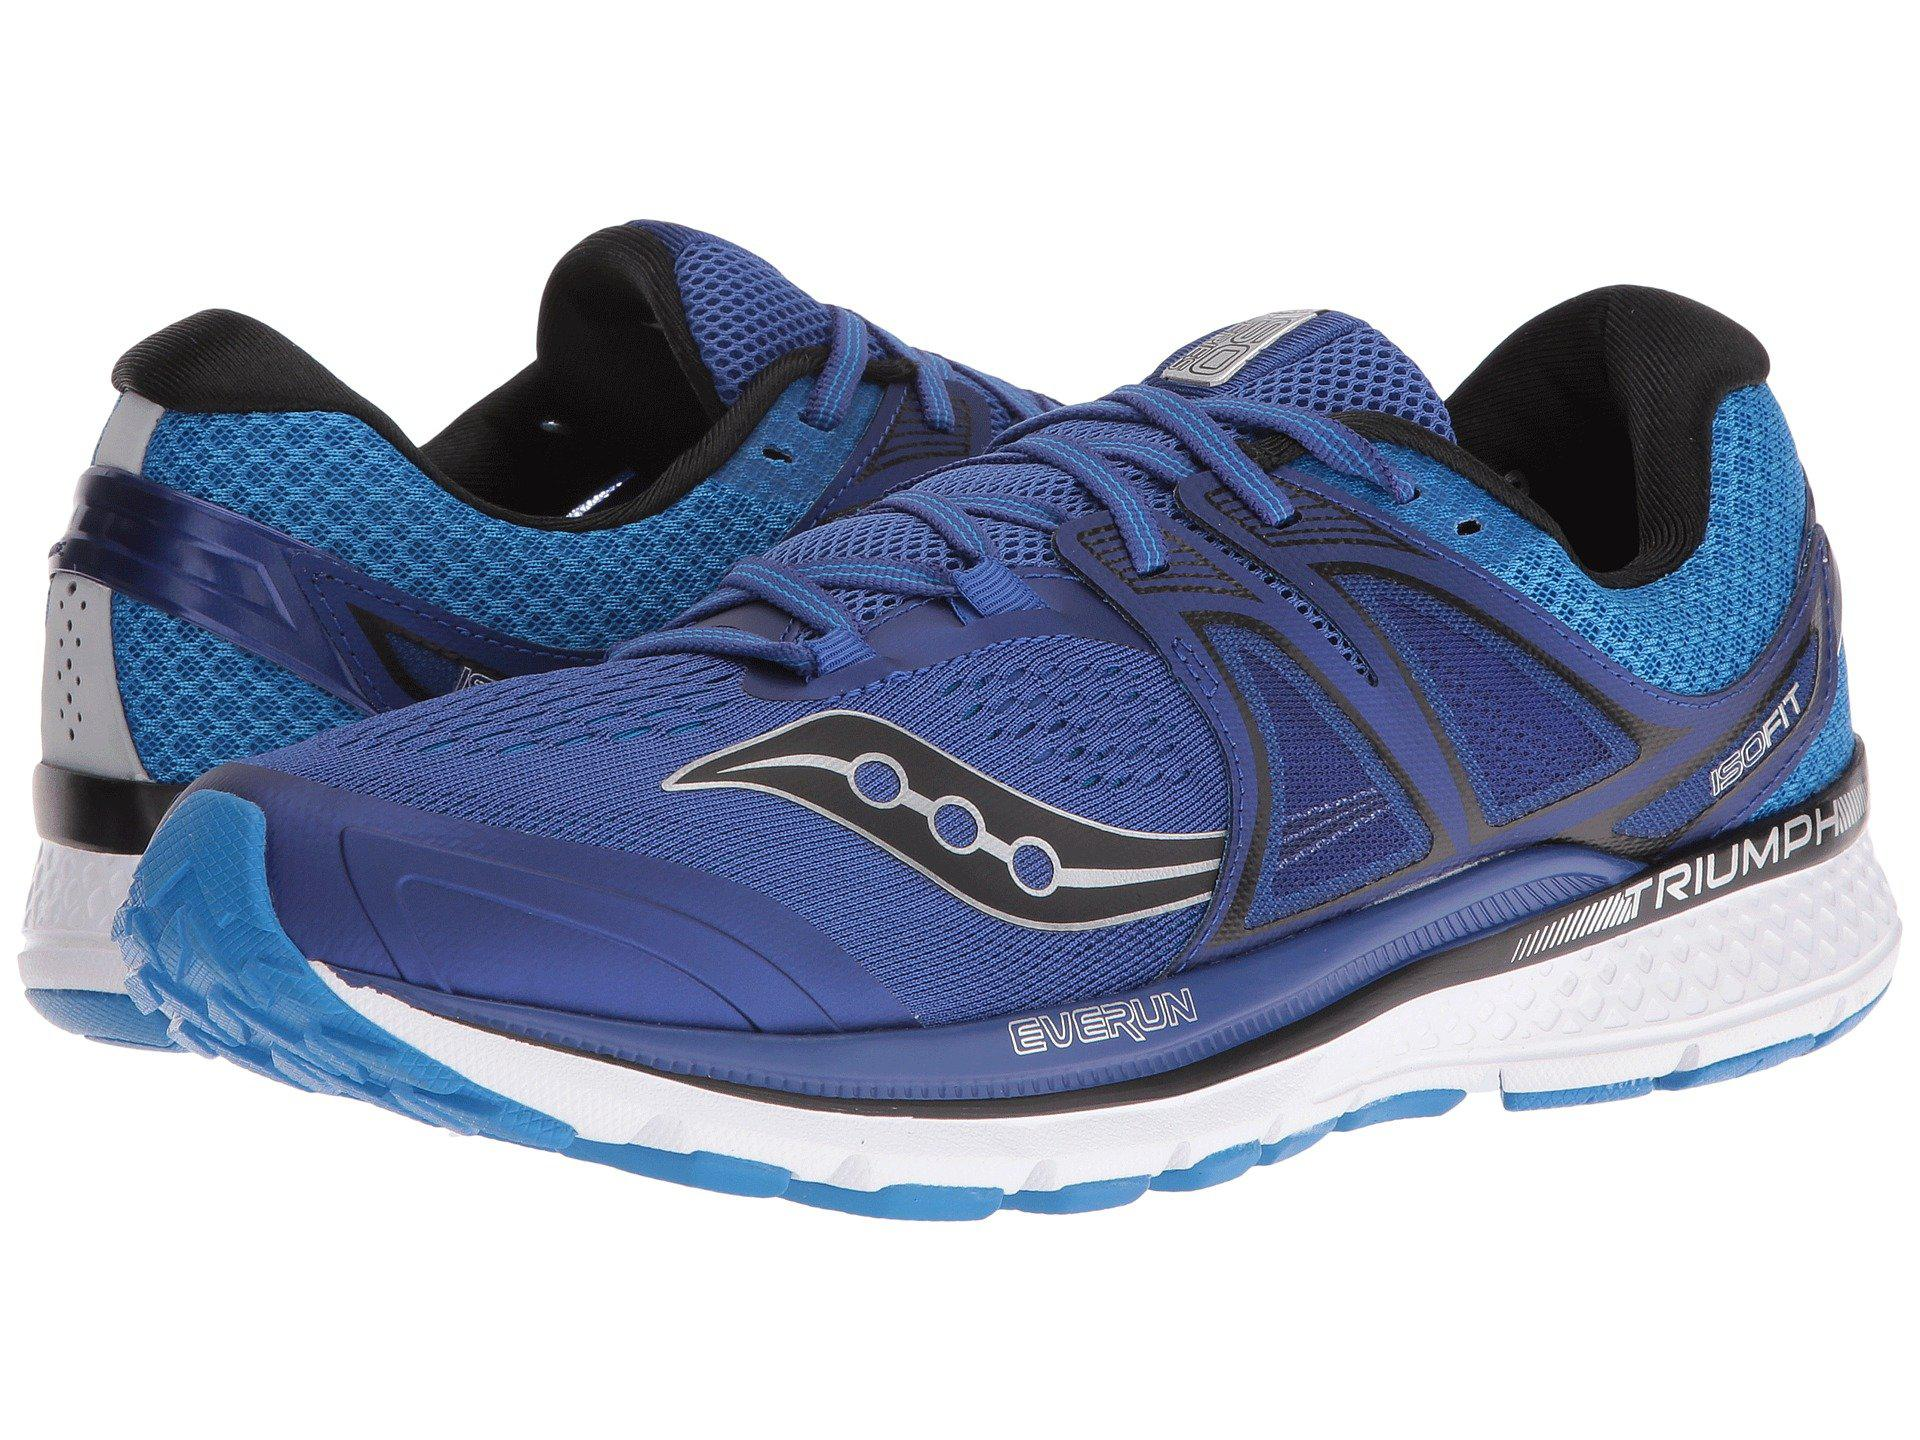 Saucony's collection of end-of-season men's sale running equipment includes the remaining shoes and clothing available from last season at reduced prices to make way for the newest styles and models. We're constantly improving our products so you have the best technology available for .